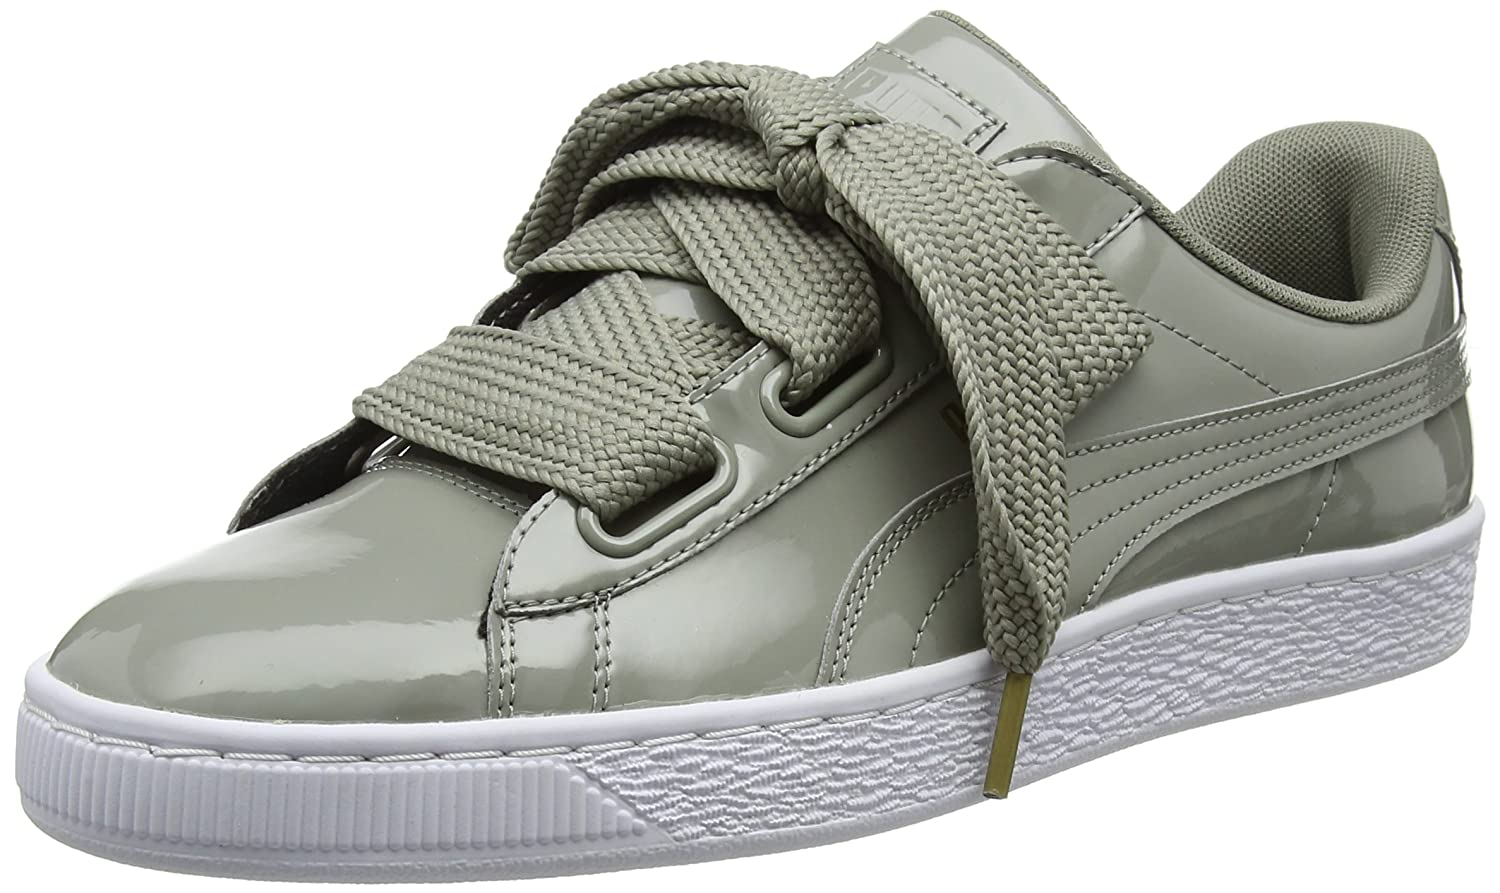 Puma Basket Heart Patent B074QSKTLQ Patent Wn (Rock s, Sneakers Basses Femme Gris (Rock Ridge-rock Ridge) 3881569 - latesttechnology.space